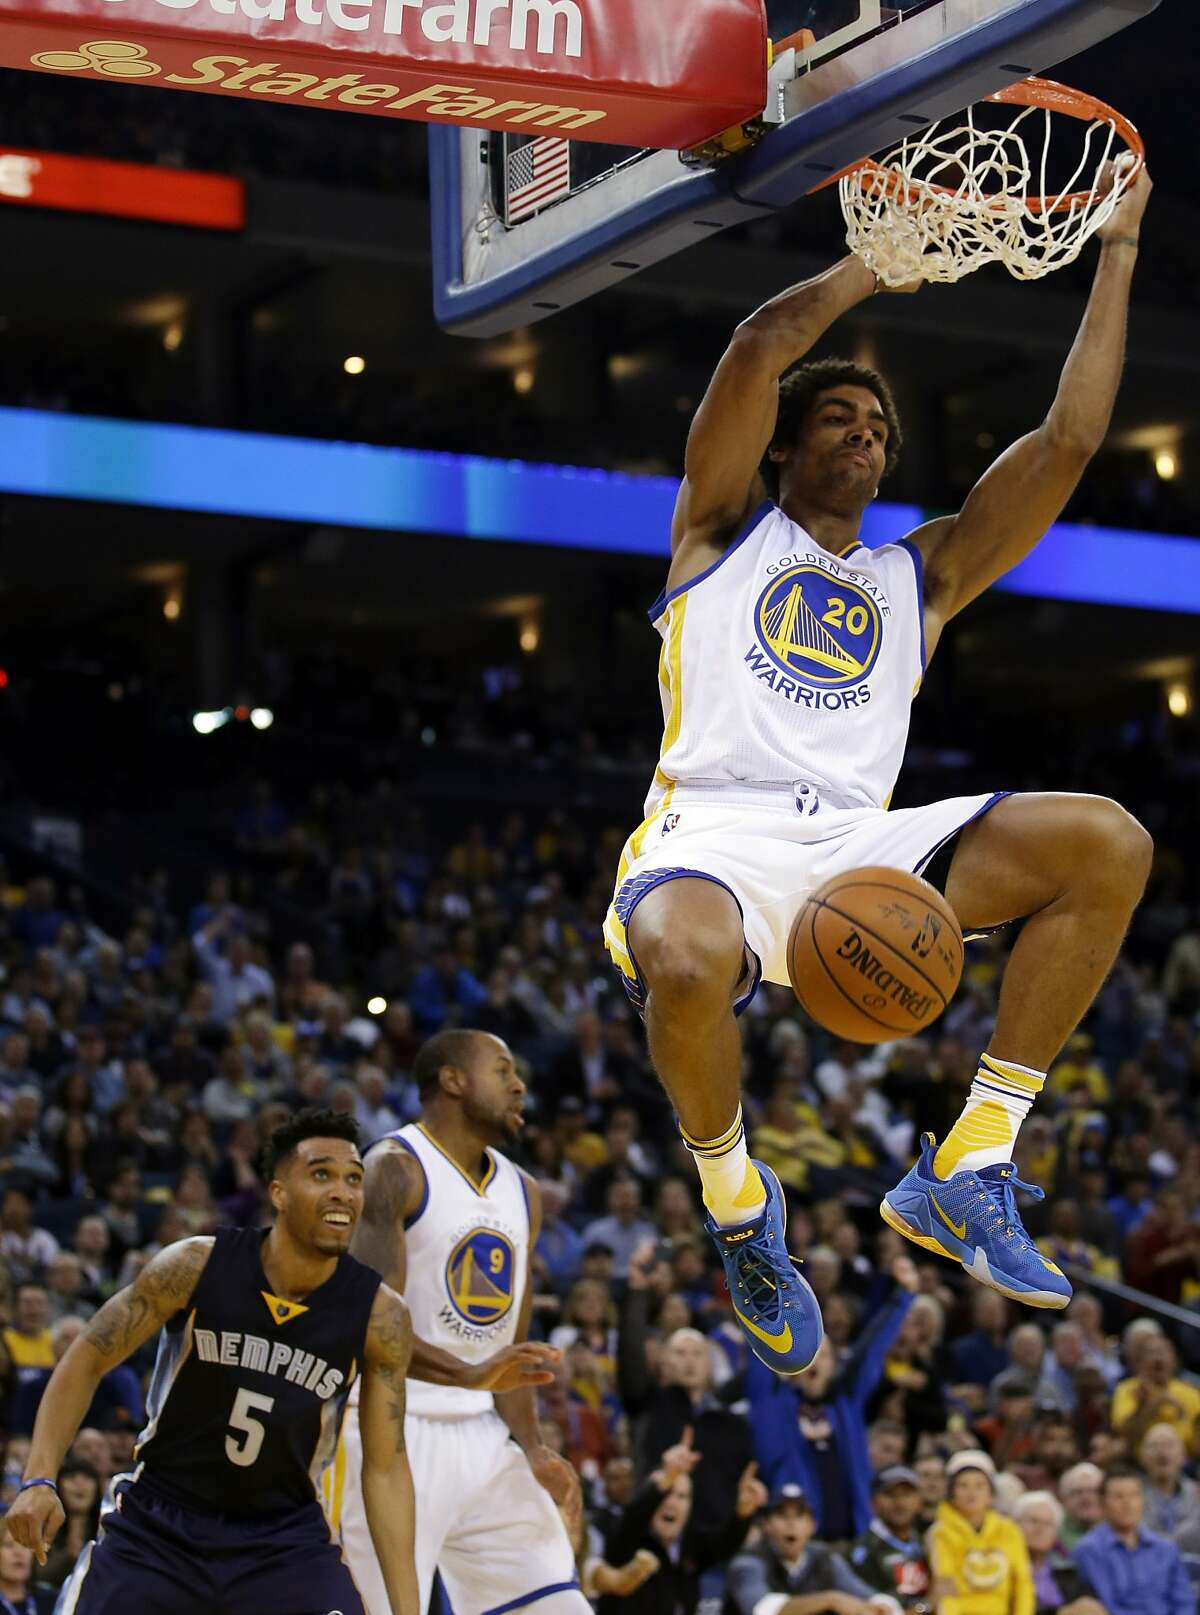 Golden State Warriors' James Michael McAdoo (20) dunks against the Memphis Grizzlies during the second half of an NBA basketball game Monday, Nov. 2, 2015, in Oakland, Calif.